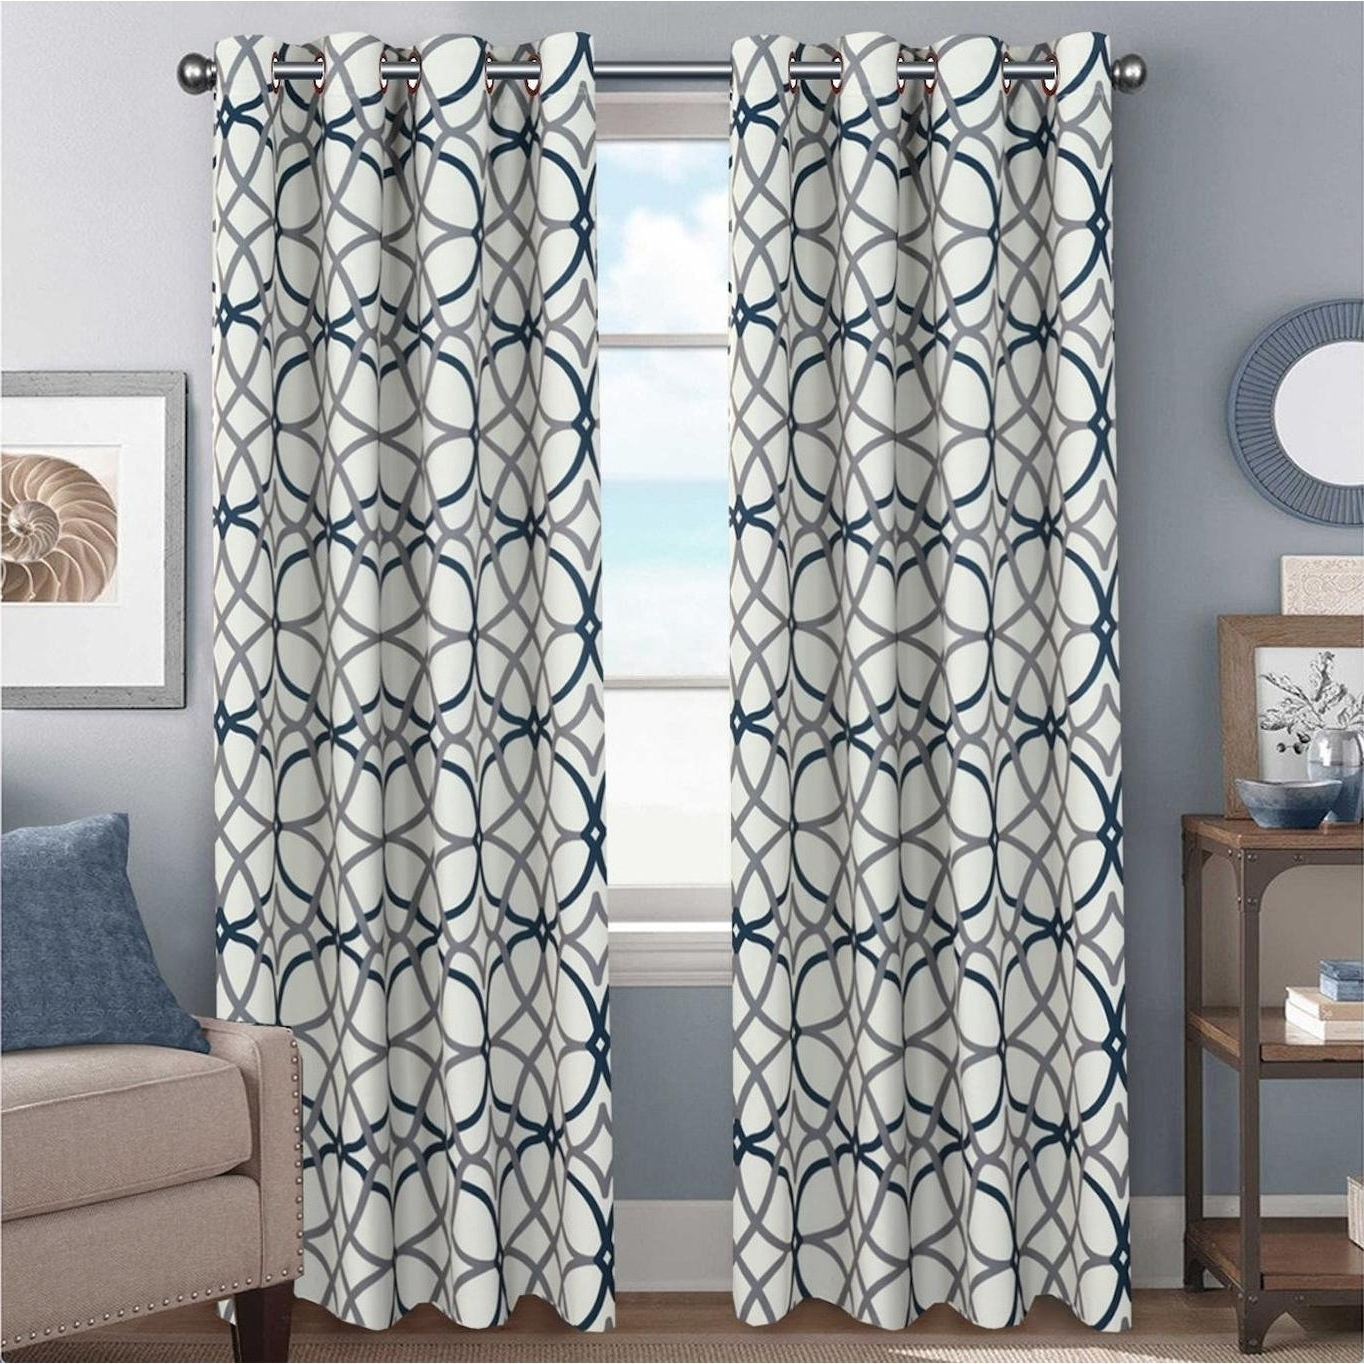 Geometric Linen Room Darkening Window Curtains For 2020 Primebeau Geometric Pattern Blackout Curtain Pair 2 Pack (View 14 of 20)